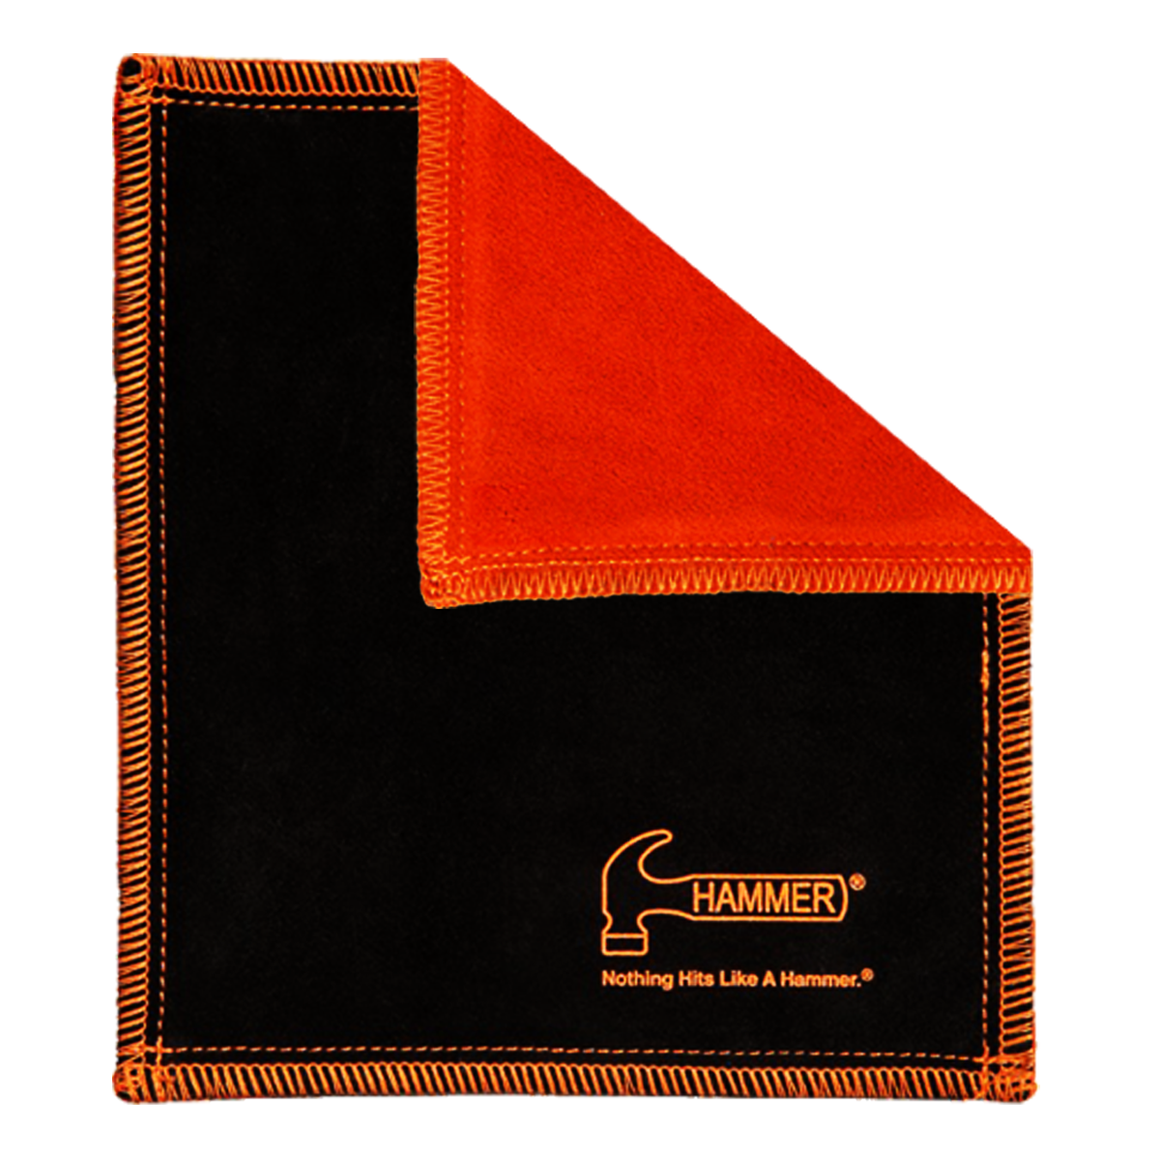 Hammer Shammy Pad/Towel | Orange